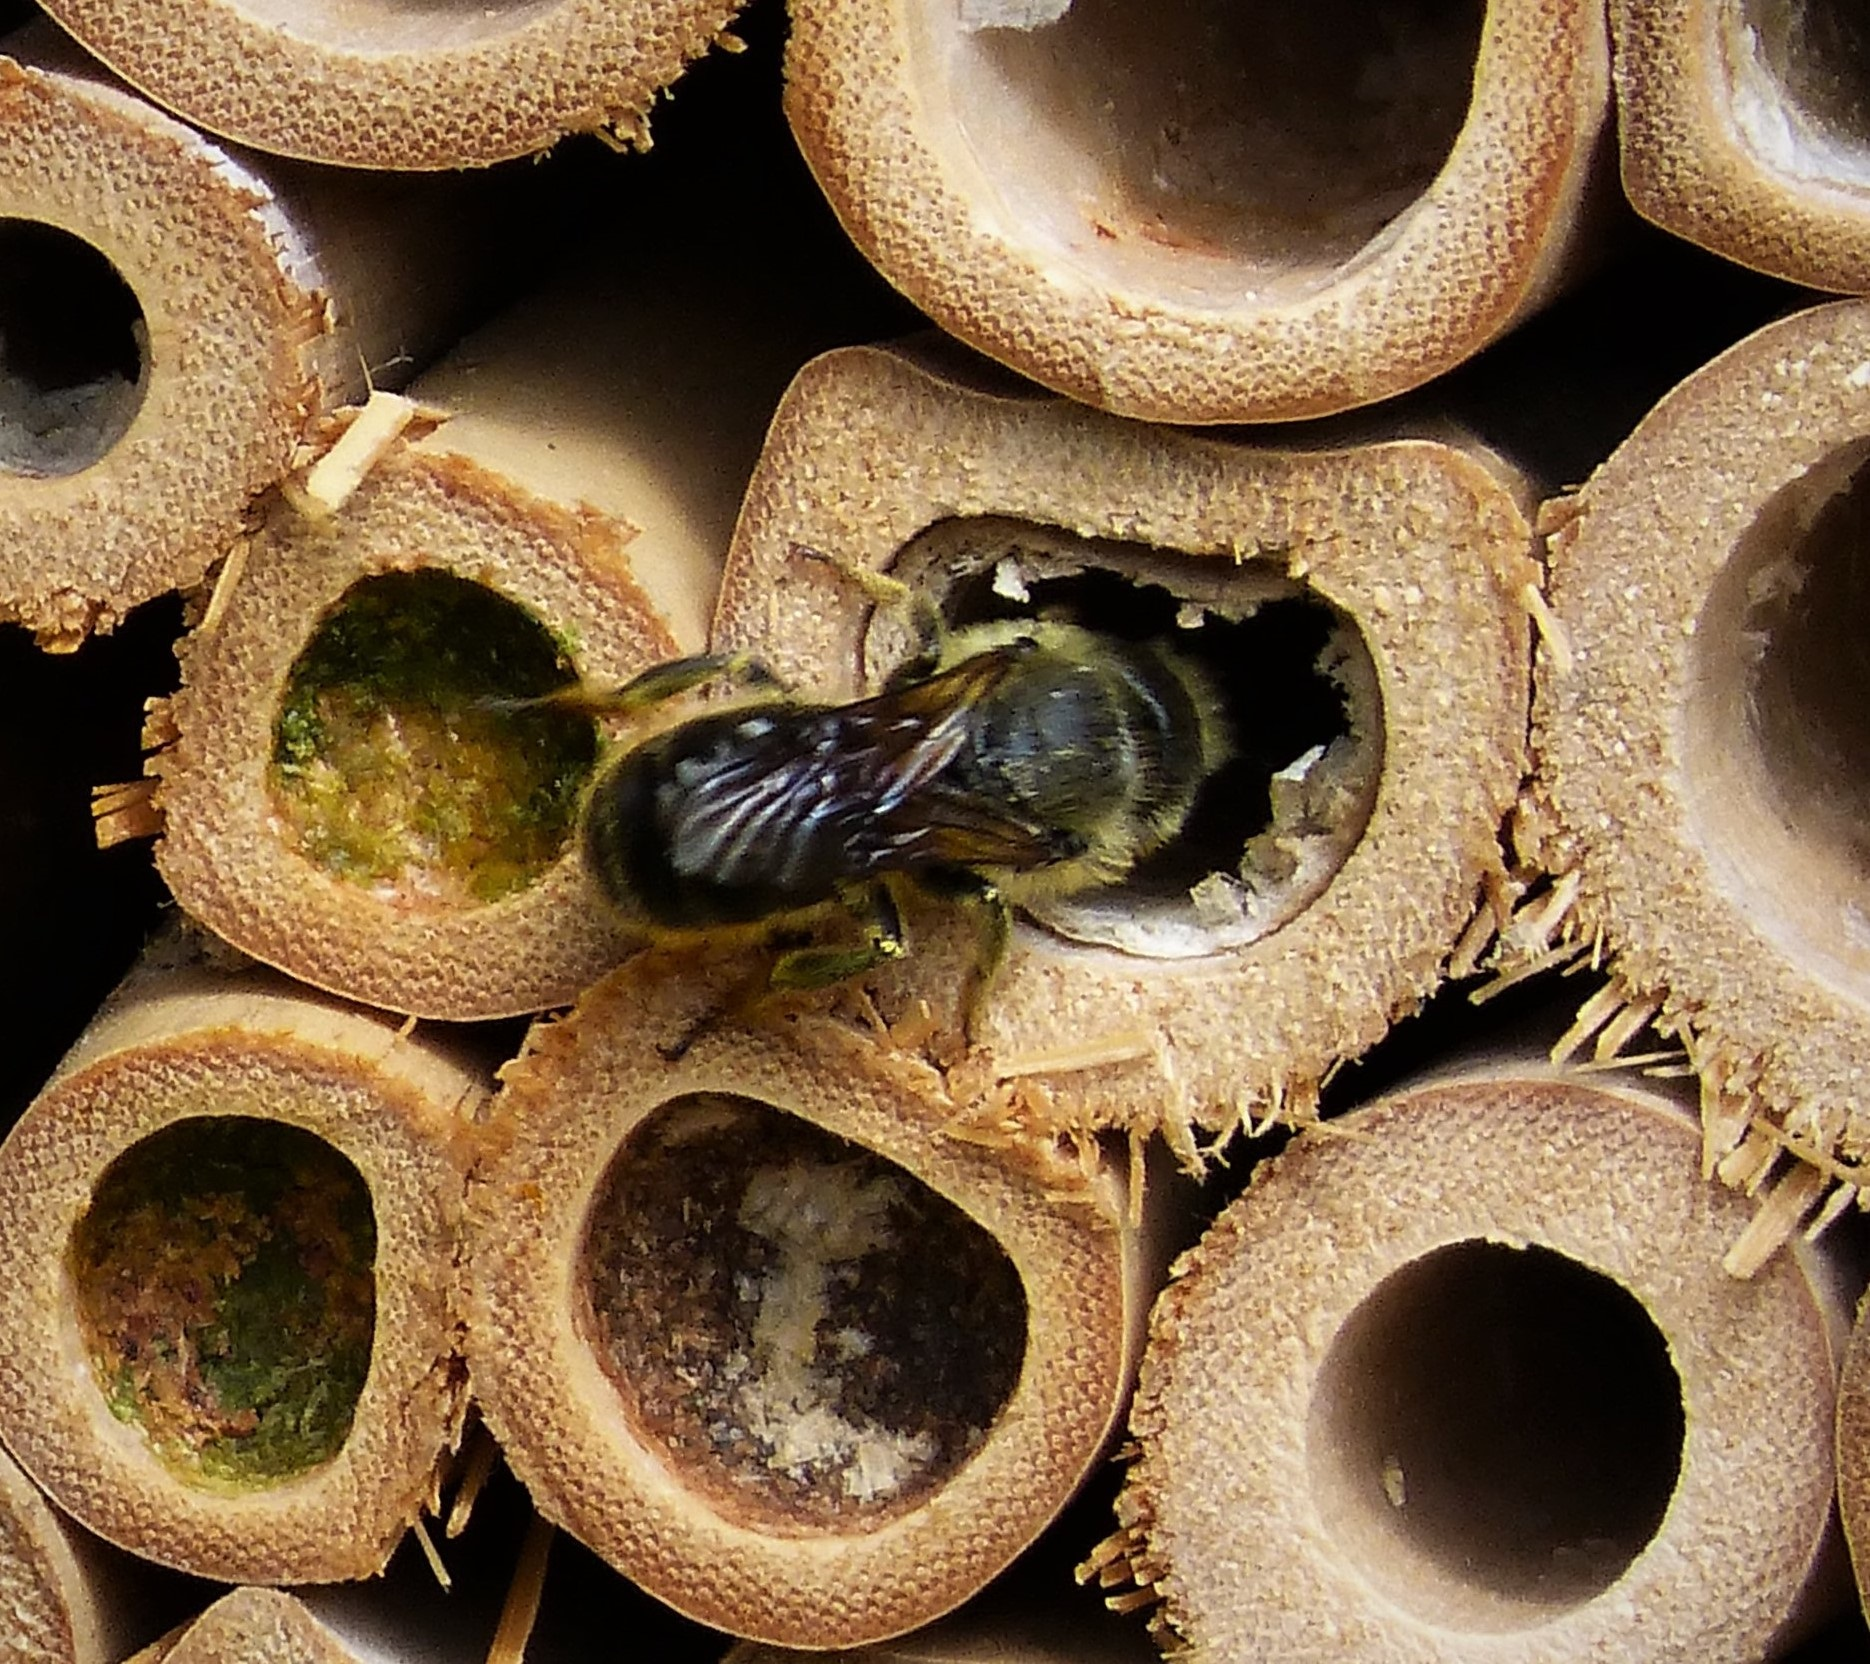 a single mason bee about to enter its nest in a bundle of bamboo tubes